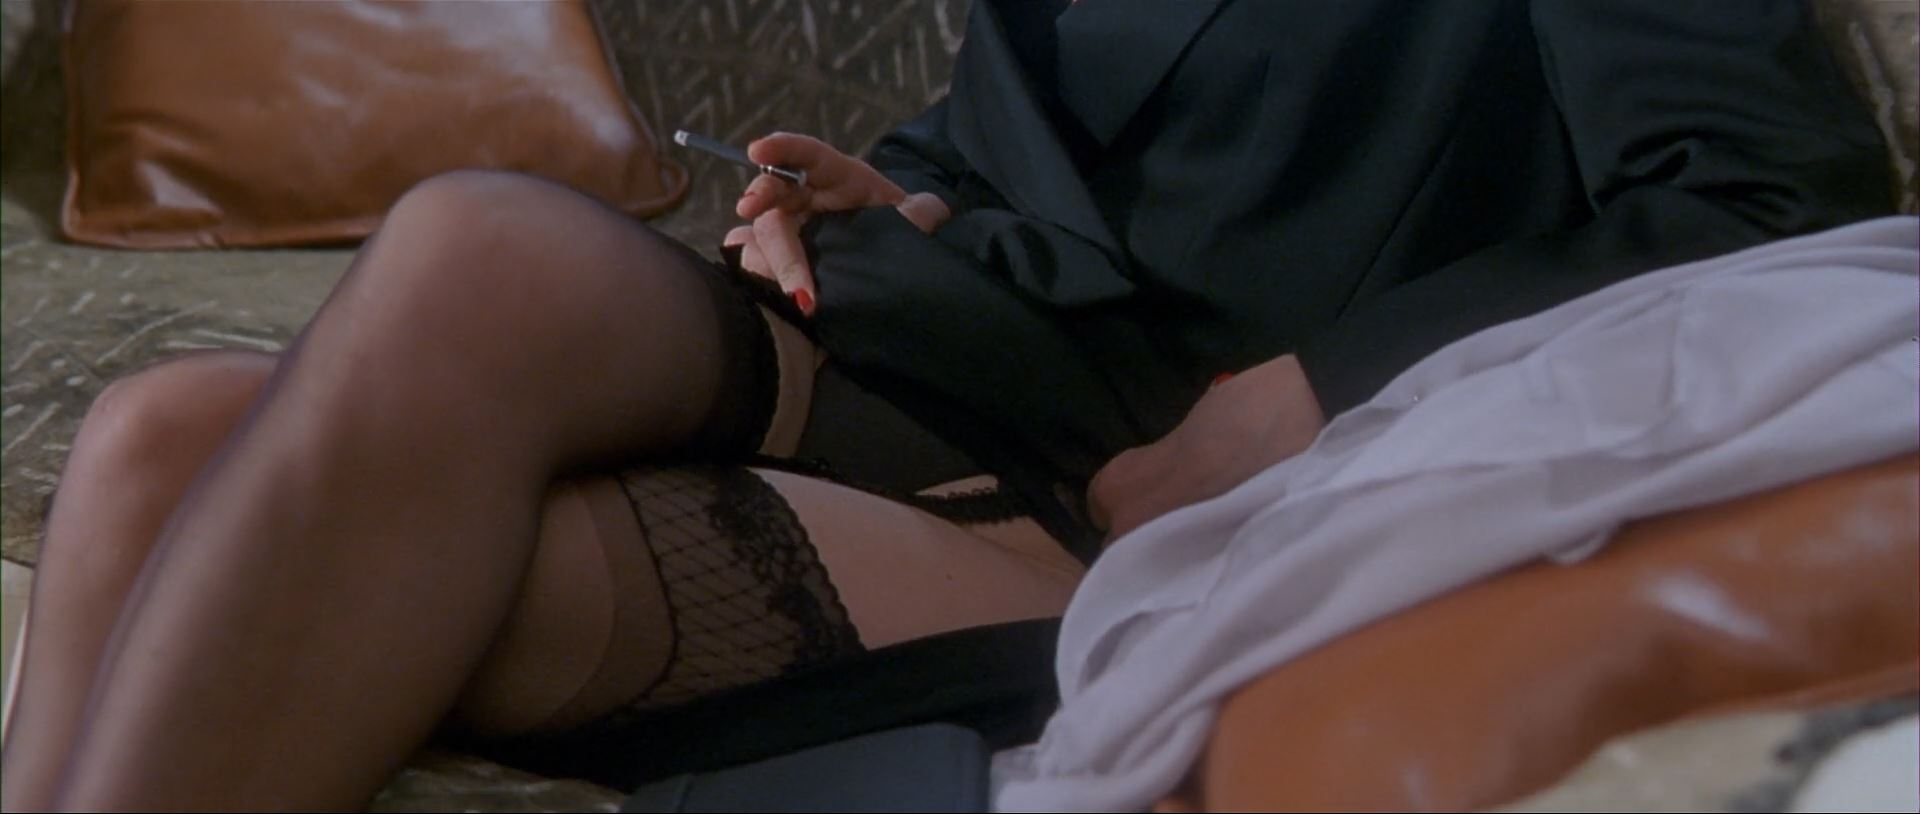 Lena Olin wearing garter and stockings - The Ninth Gate